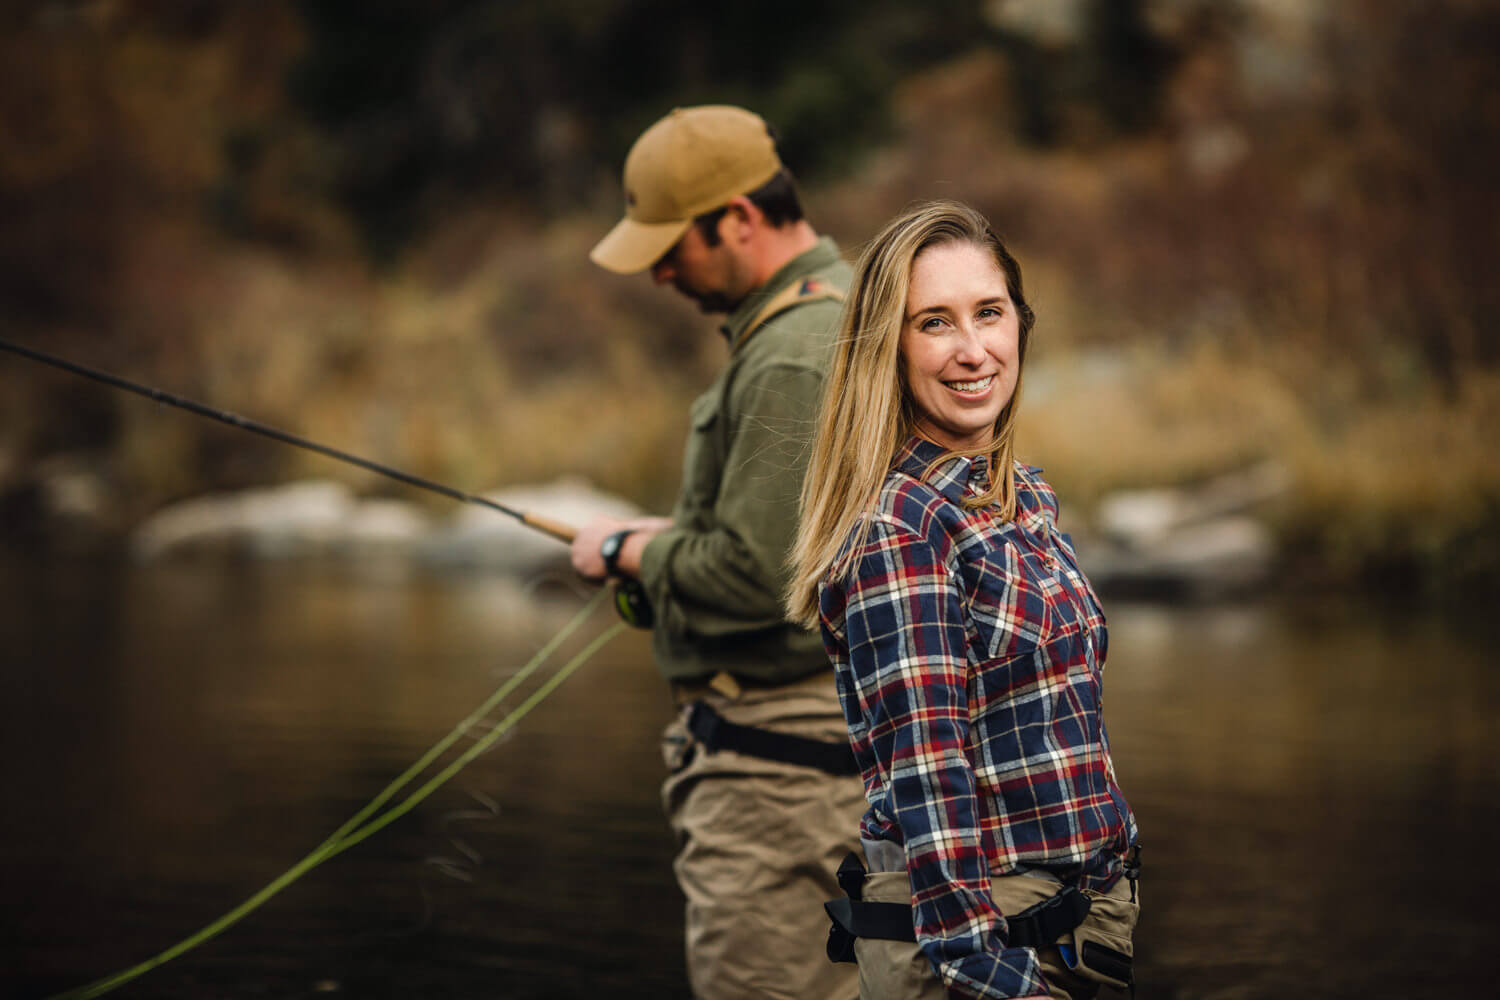 Woman in plaid shirt smiles at camera. Man fishes.